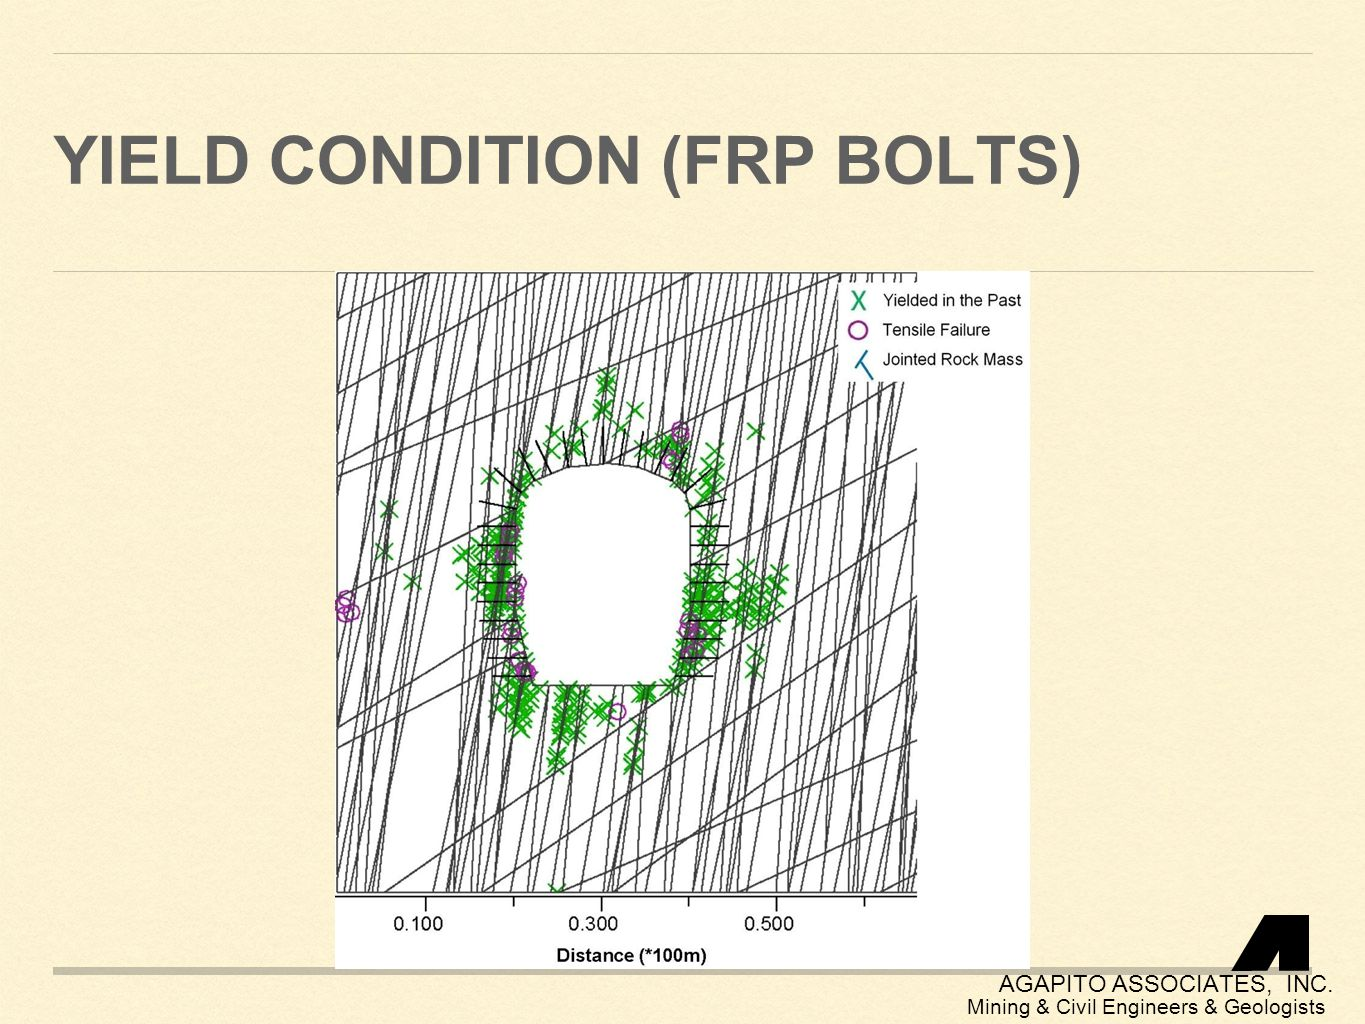 Yield condition (frp bolts)